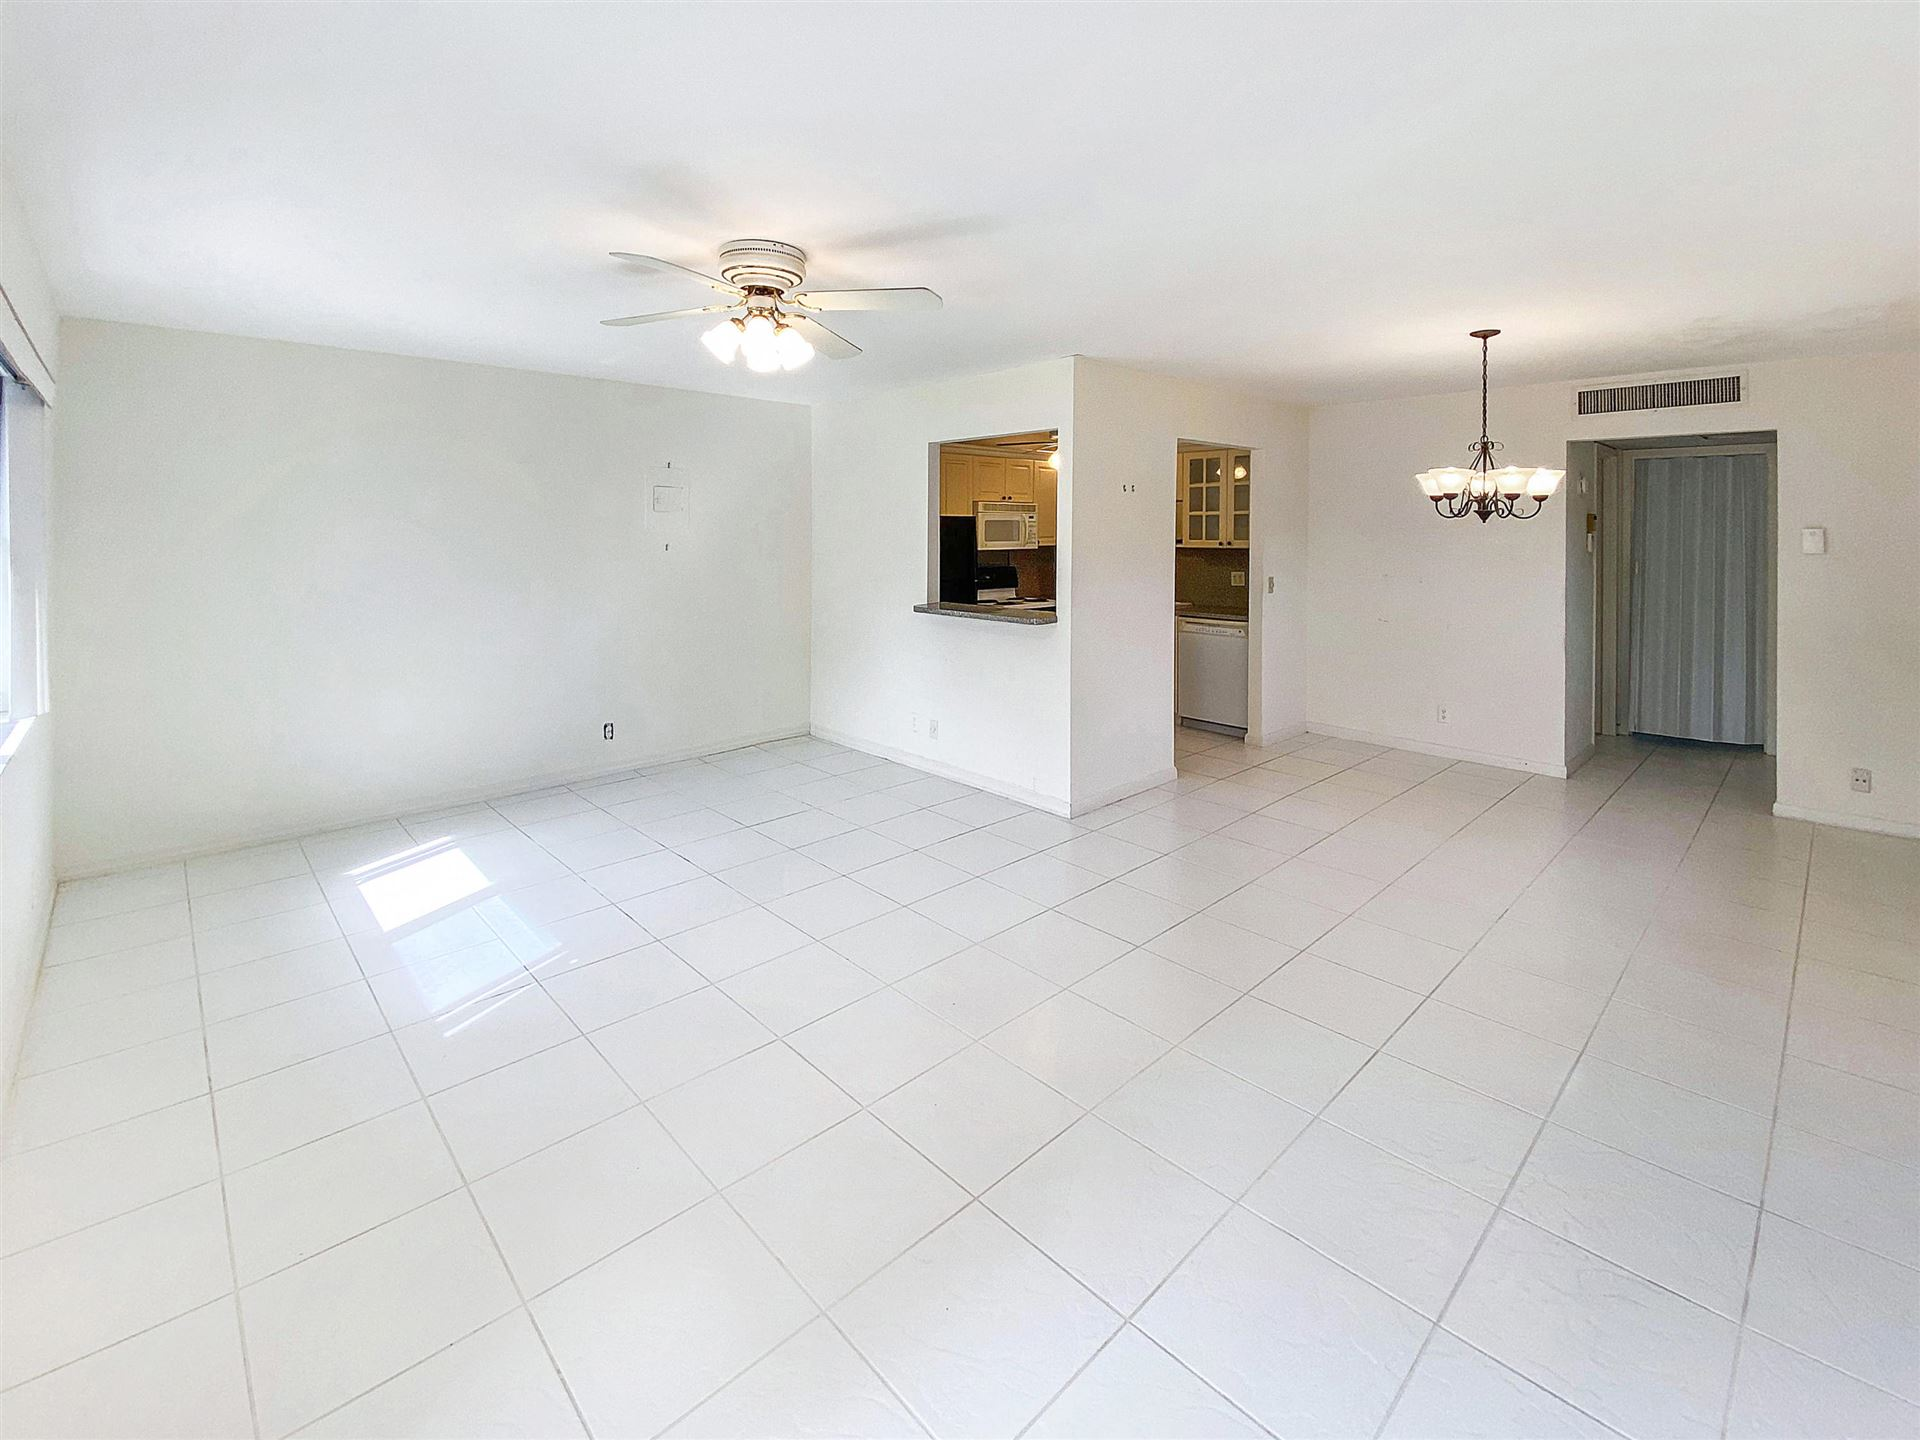 Photo of 202 Waterford I, Delray Beach, FL 33446 (MLS # RX-10658024)